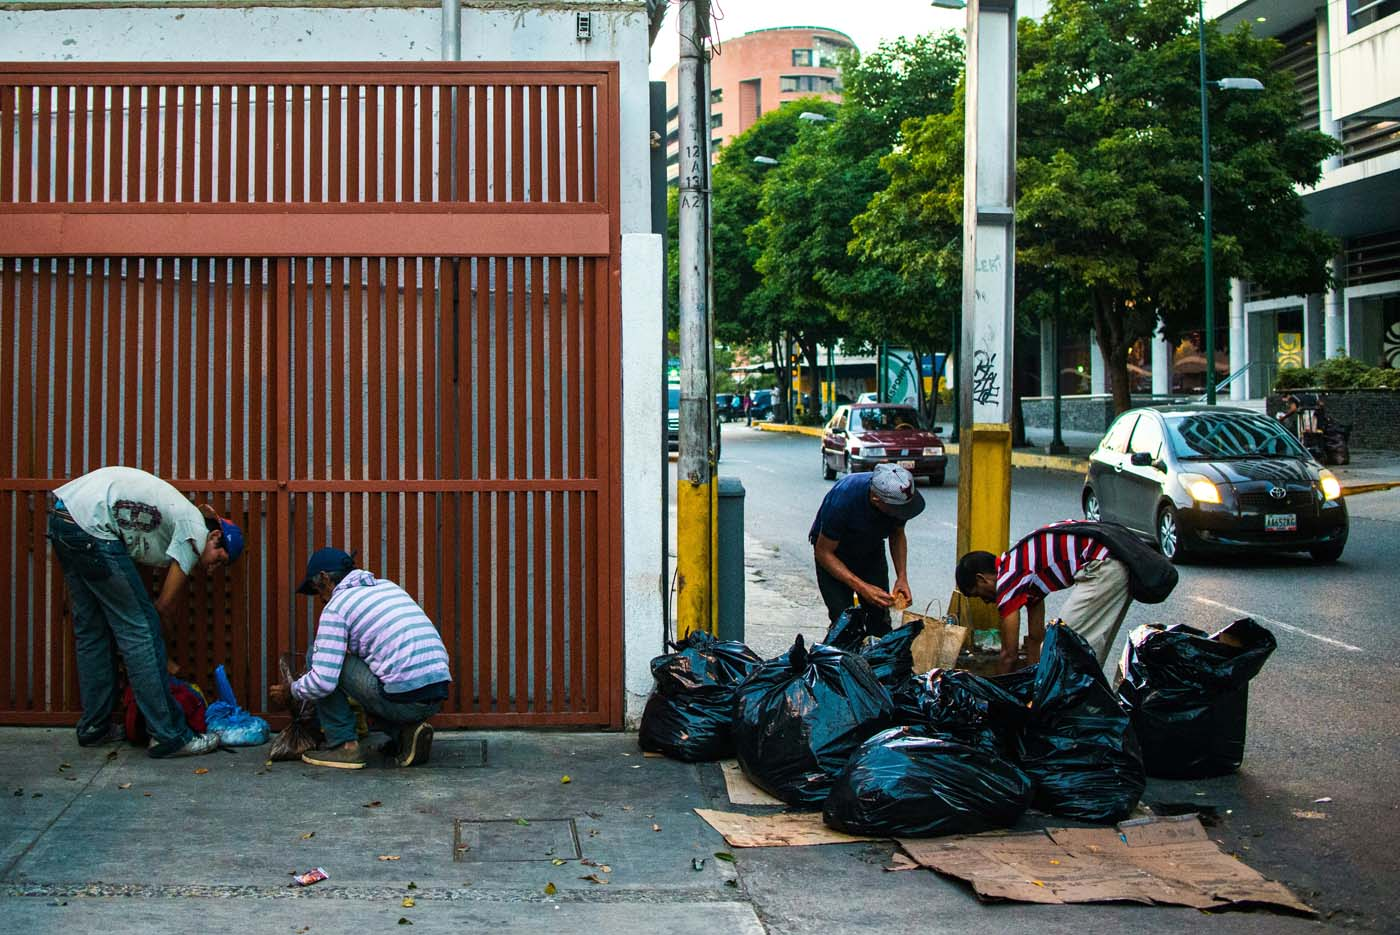 People scavenge for food in the streets of Caracas on February 22, 2017. Venezuelan President Nicolas Maduro is resisting opposition efforts to hold a vote on removing him from office. The opposition blames him for an economic crisis that has caused food shortages. / AFP PHOTO / Federico PARRA